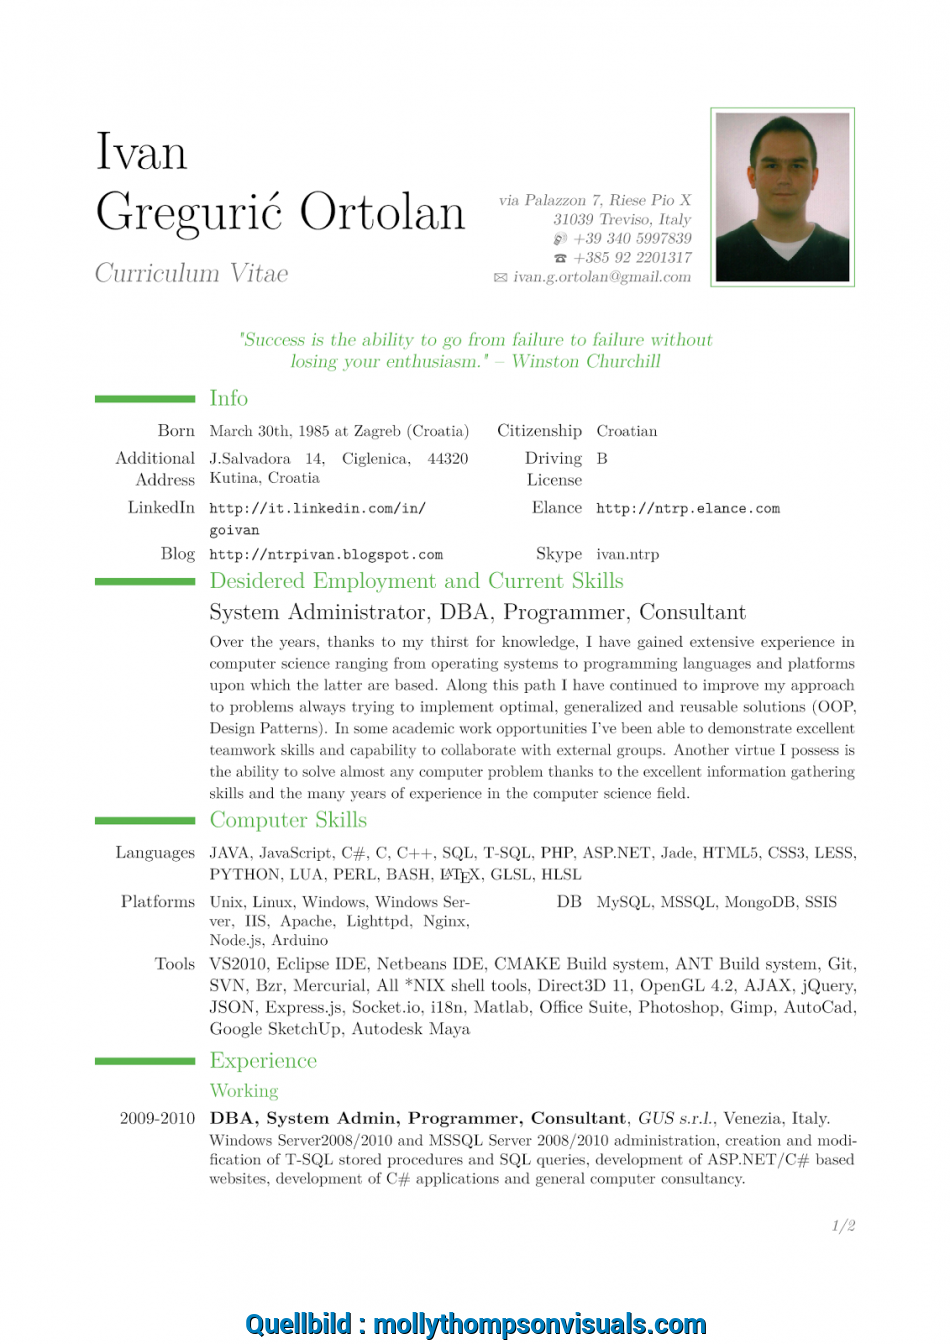 Großartig Cv Template Latex Download Ntrp Tech Talk Latex Cv Template Based On Moderncv Class Latex Templates